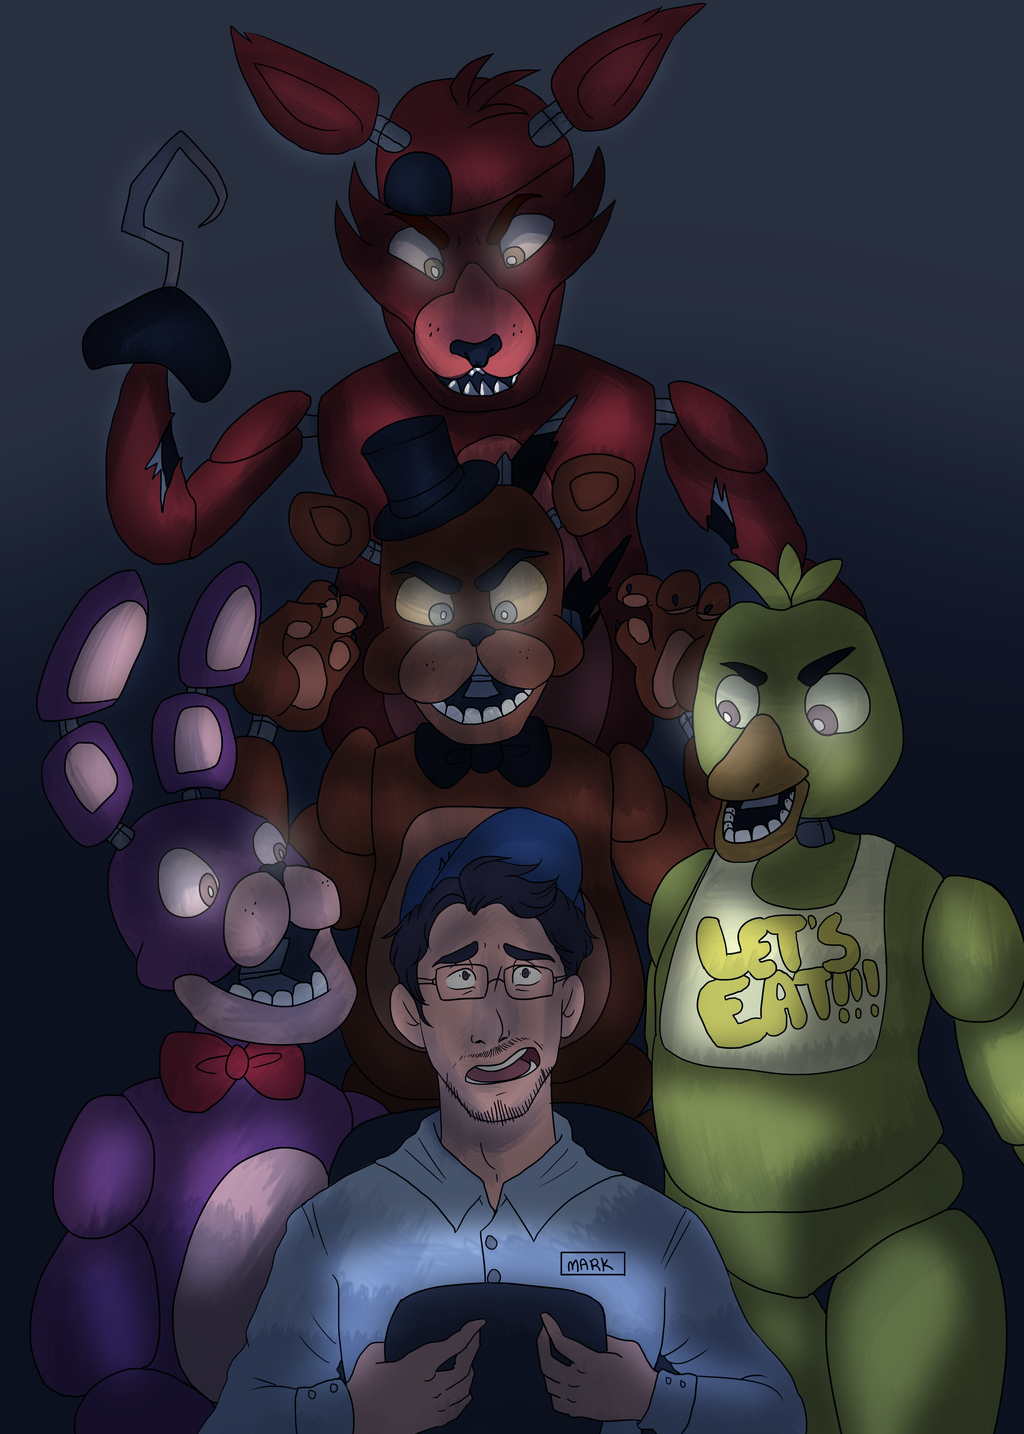 The King Of Five Nights At Freddy S By Syntheticanimals On